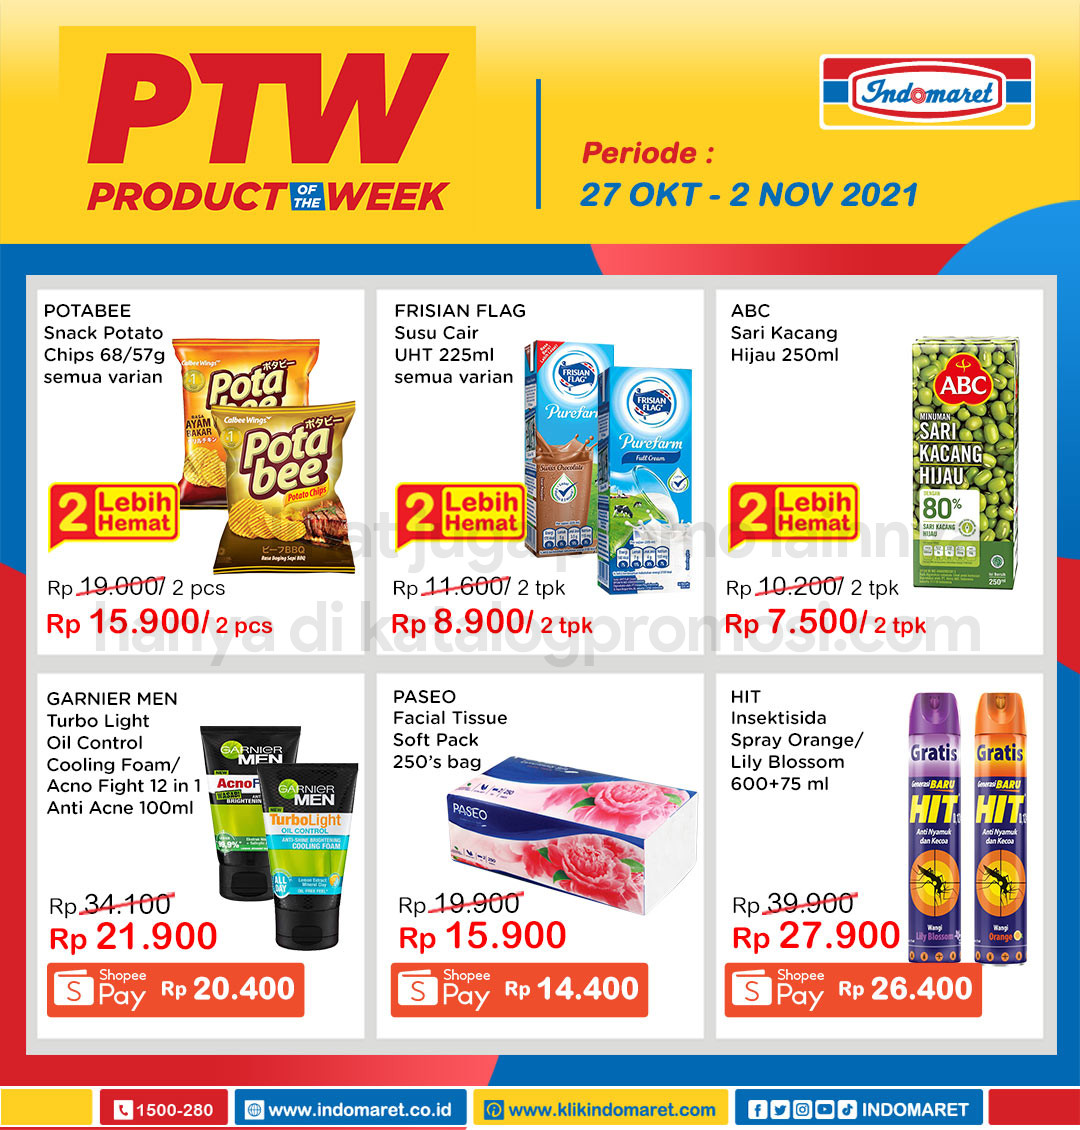 INDOMARET Promo PTW - PRODUCT of The Week periode 27 Oktober - 02 November 2021